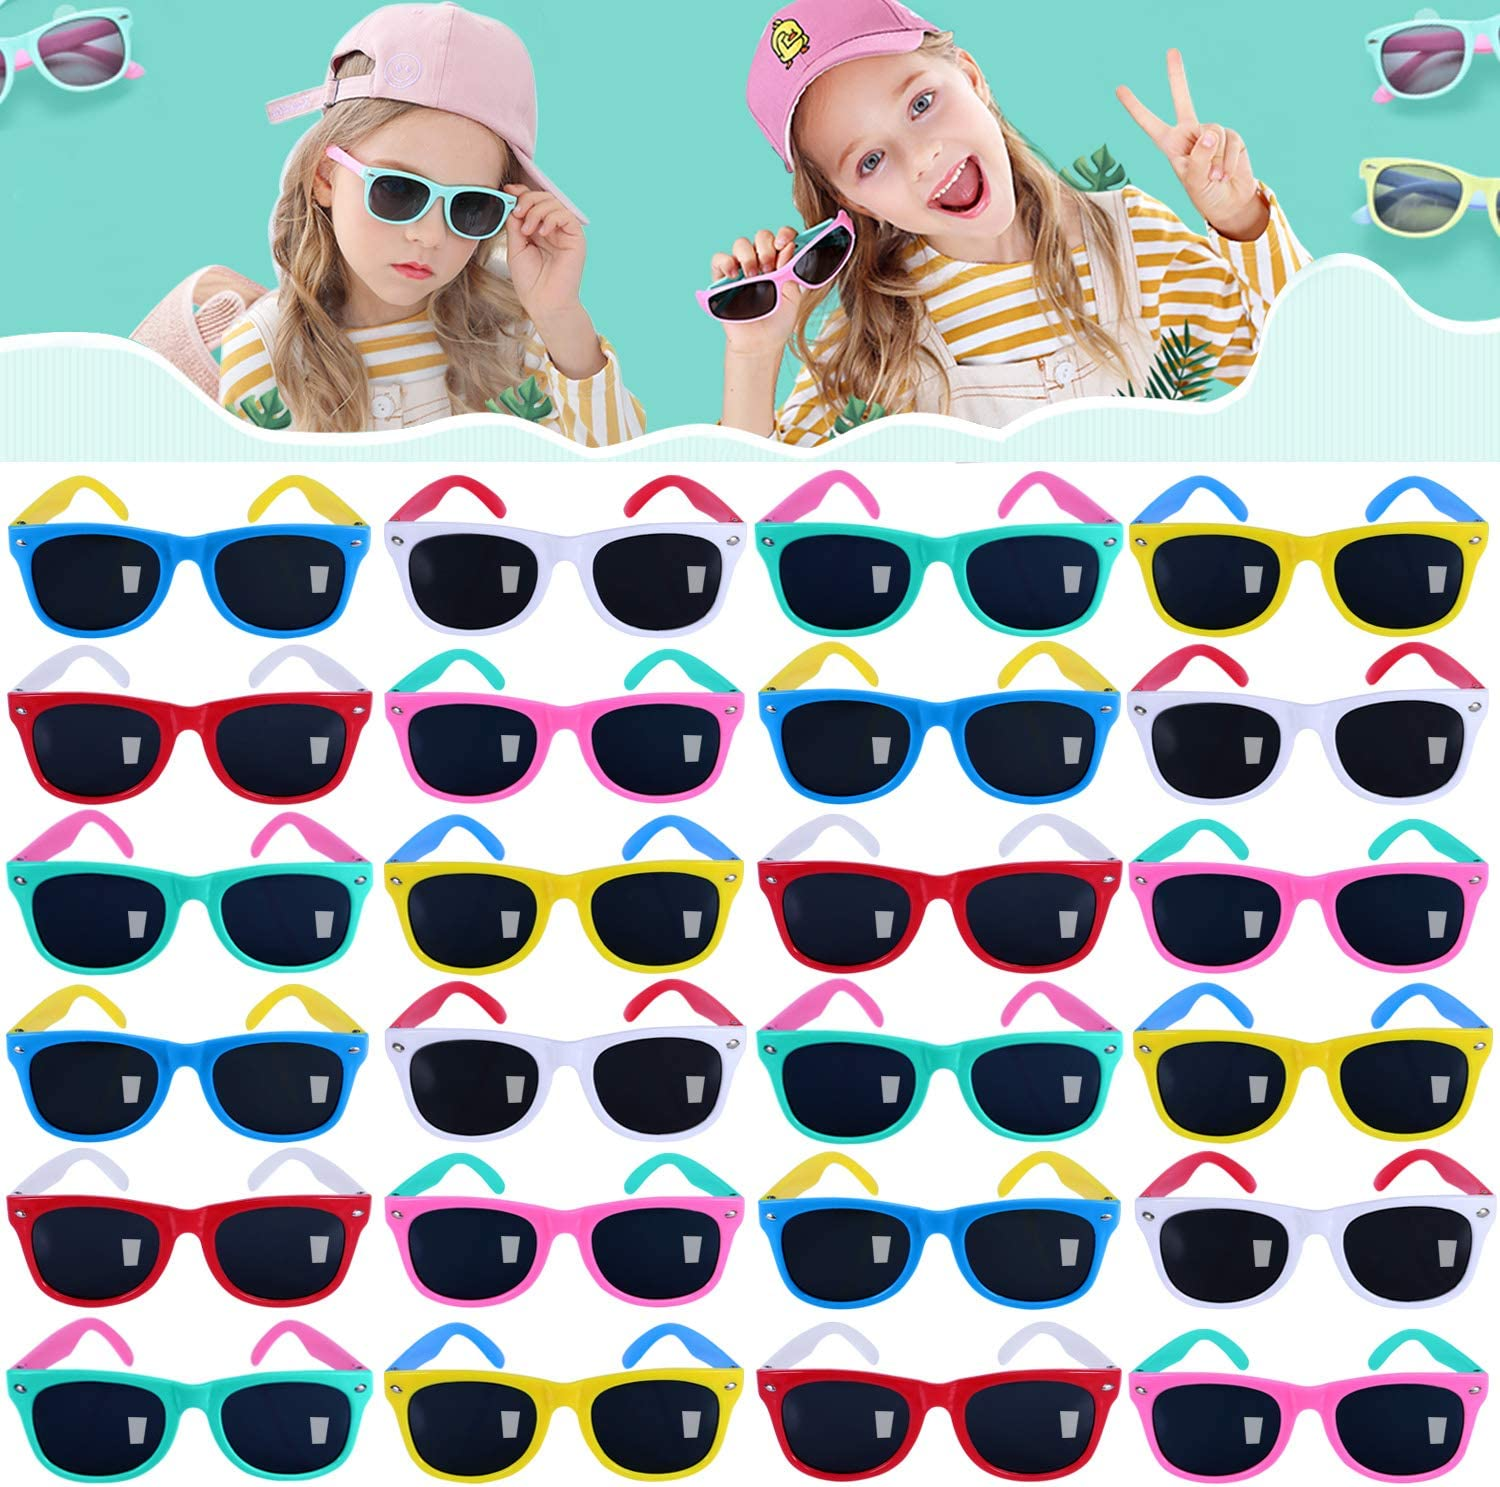 24pack Neon Sunglasses for Kids, Boys and Girls, Kids Sunglasses Party Favors in Bulk, Summer Beach, Pool Party Favors, Fun Gifts, Party Toys, Goody Bag Stuffers, Gift for Birthday Party Supplies